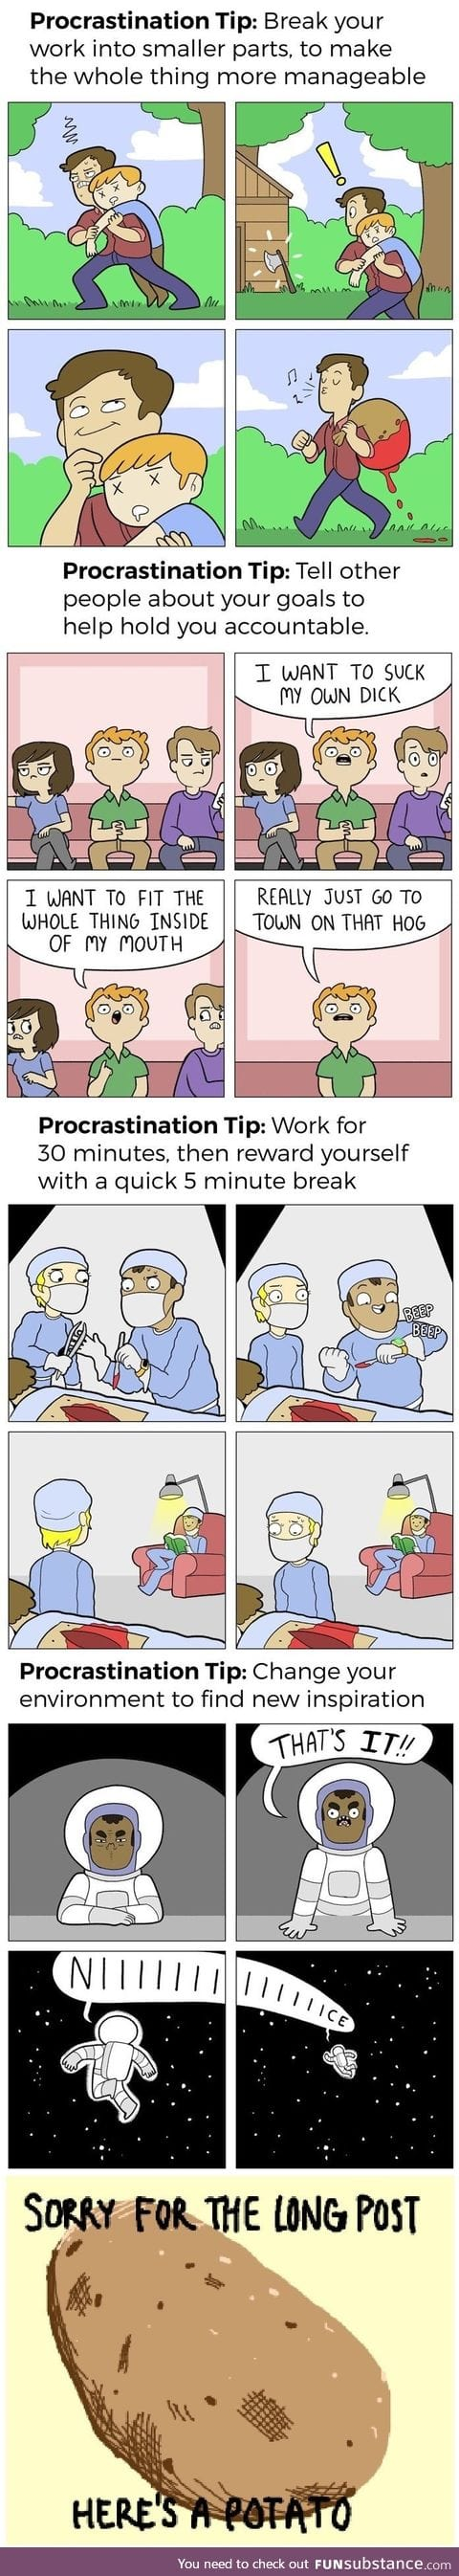 How to cure procrastination. A guide made easy